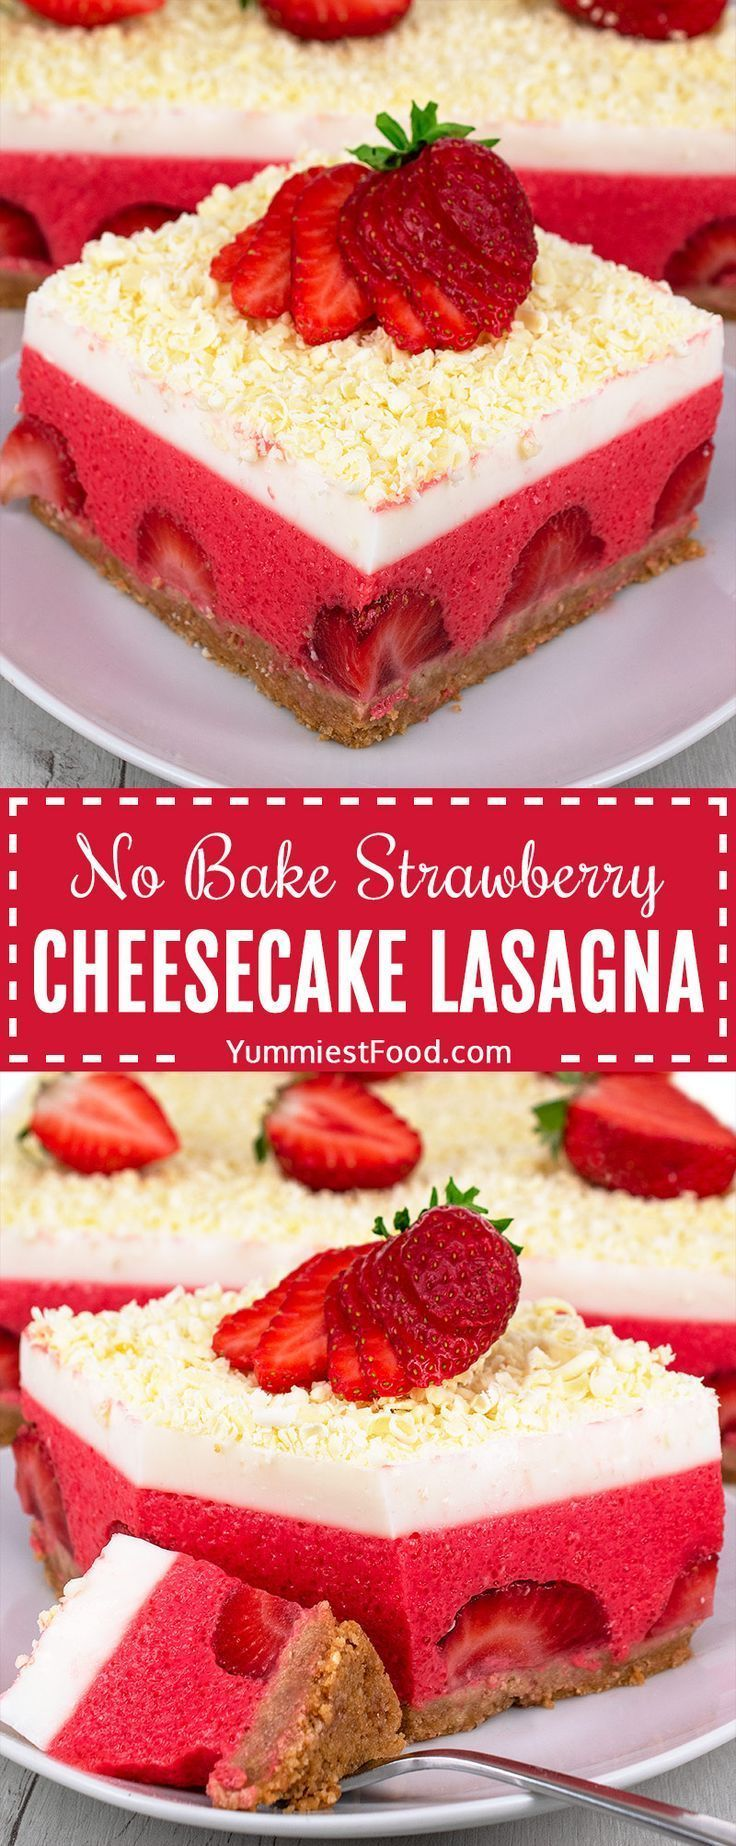 No Bake Strawberry Cheesecake Lasagna is simple and easy dessert recipe for refreshing summer sweet treat and use only a few ingredients: fresh strawberries, whipped cream, strawberry jelly, cream cheese, graham crackers, white chocolate, and strawberry Greek yogurt. Bake Strawberry Cheesecake Lasagna is simple and easy dessert recipe for refreshing summer sweet treat and use only a few ingredients: fresh strawberries, whipped cream, strawberry jelly, cream cheese, graham crackers, white chocolate, and strawberry Greek yogurt.